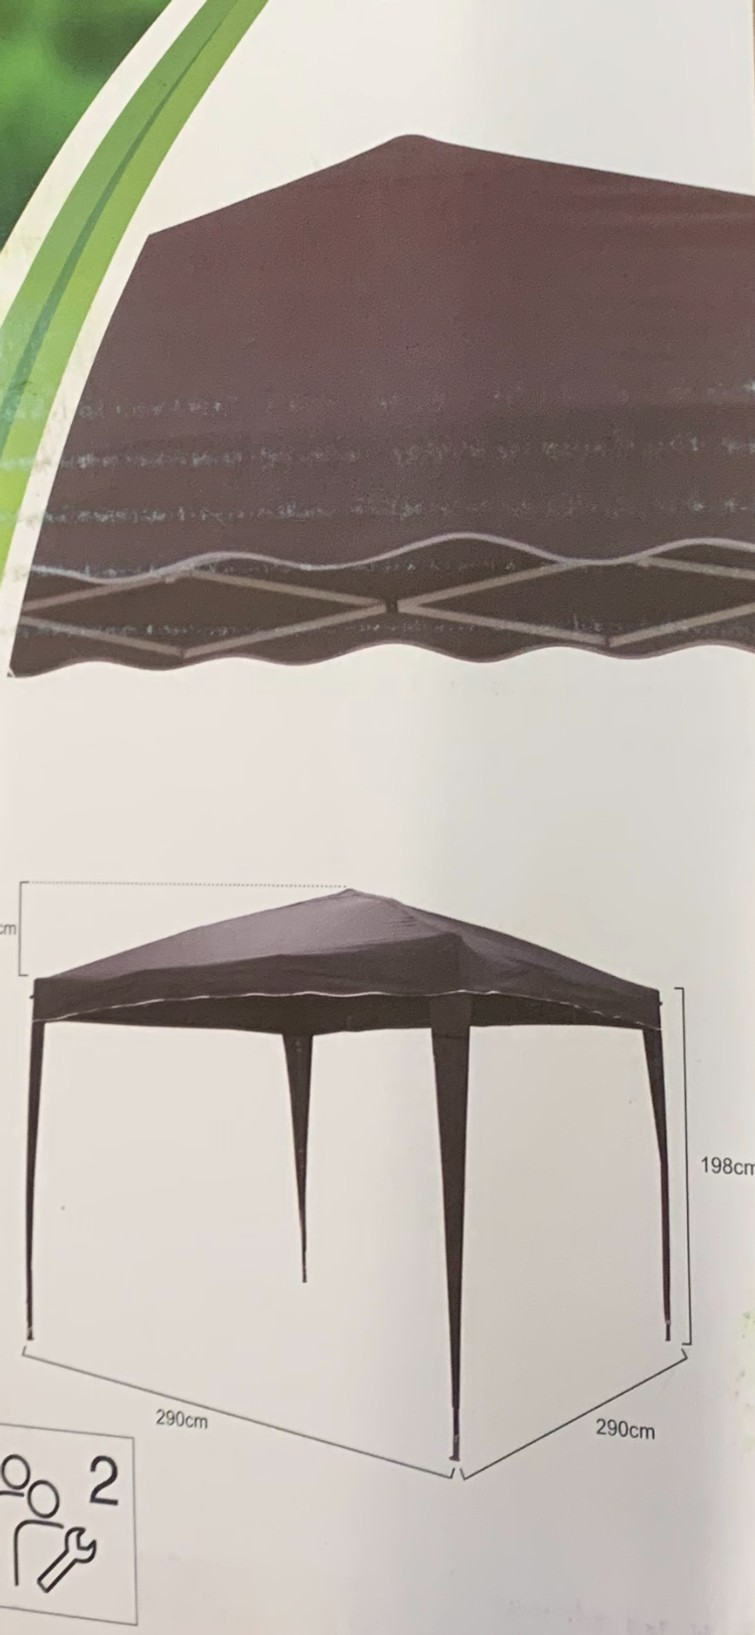 Partytent 3x3 meter .. easy up